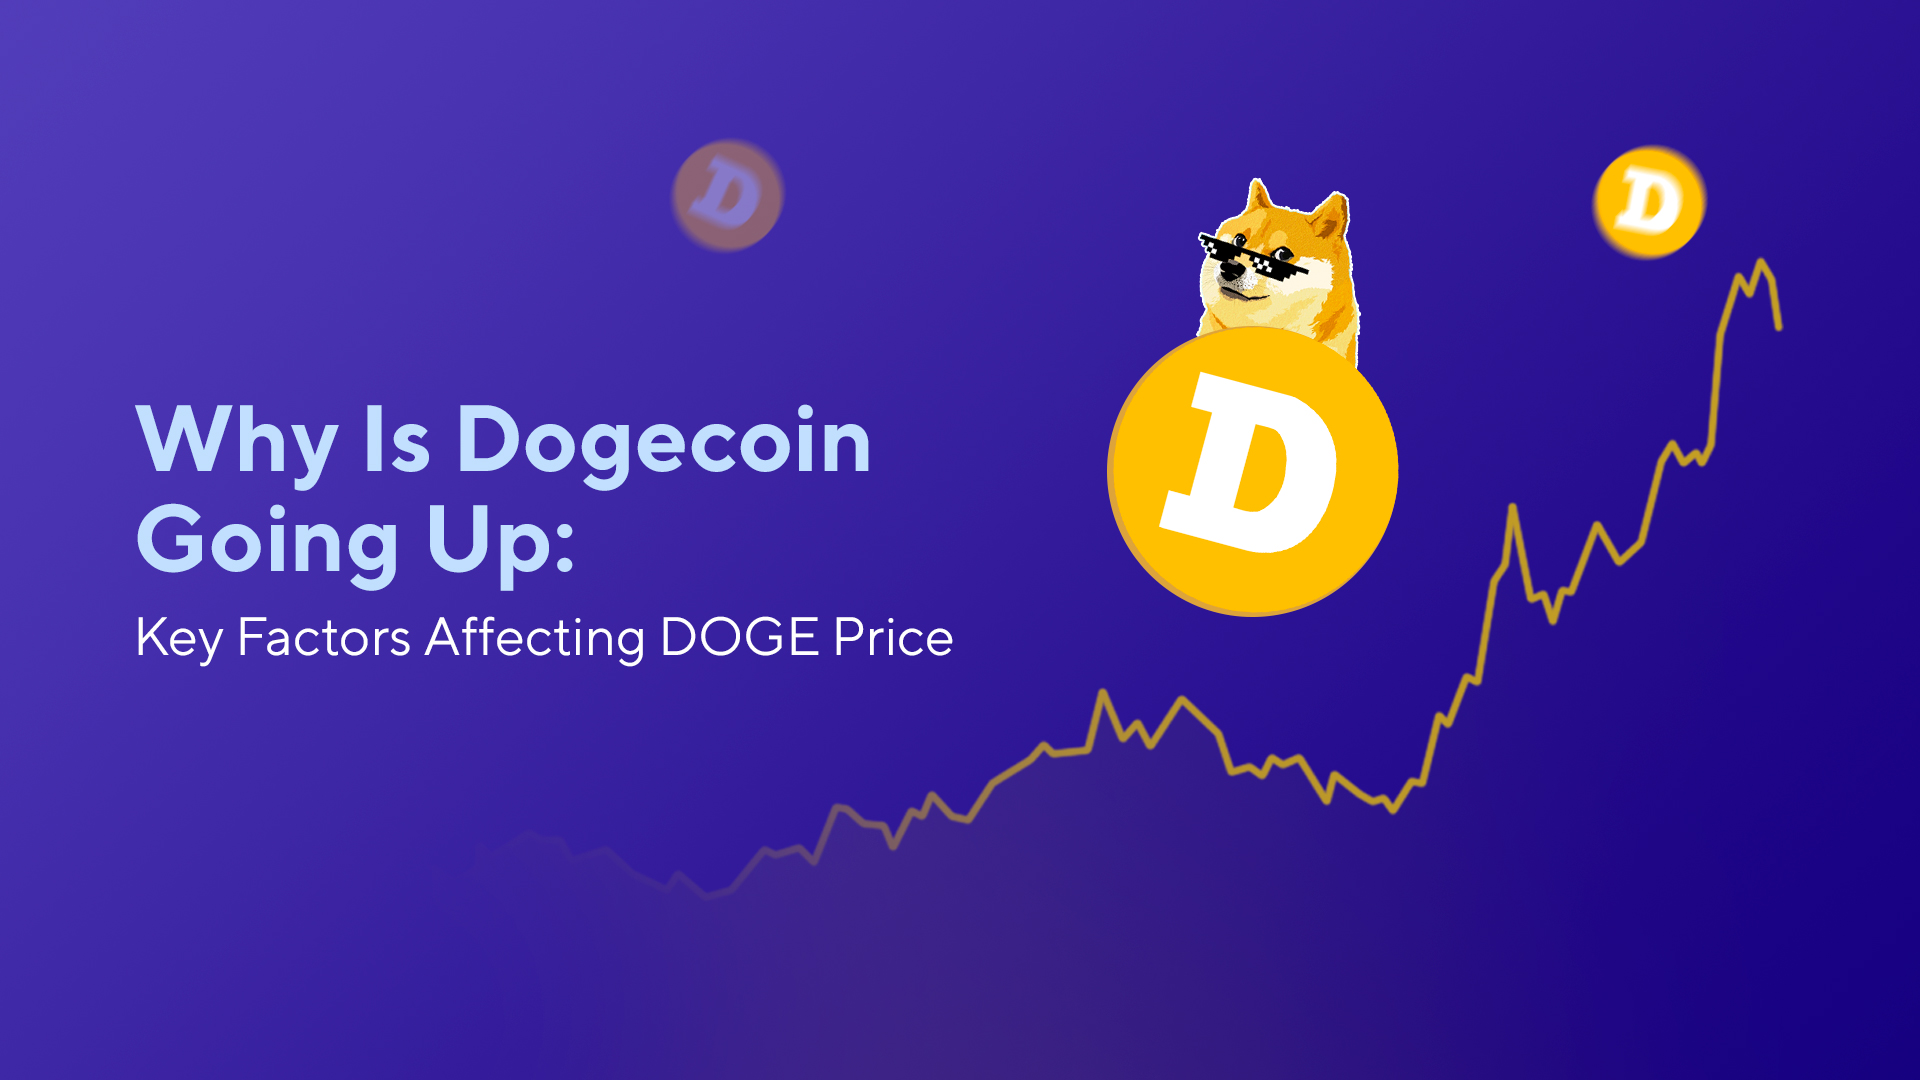 Why Is Dogecoin Going Up: Key Factors Affecting DOGE Price